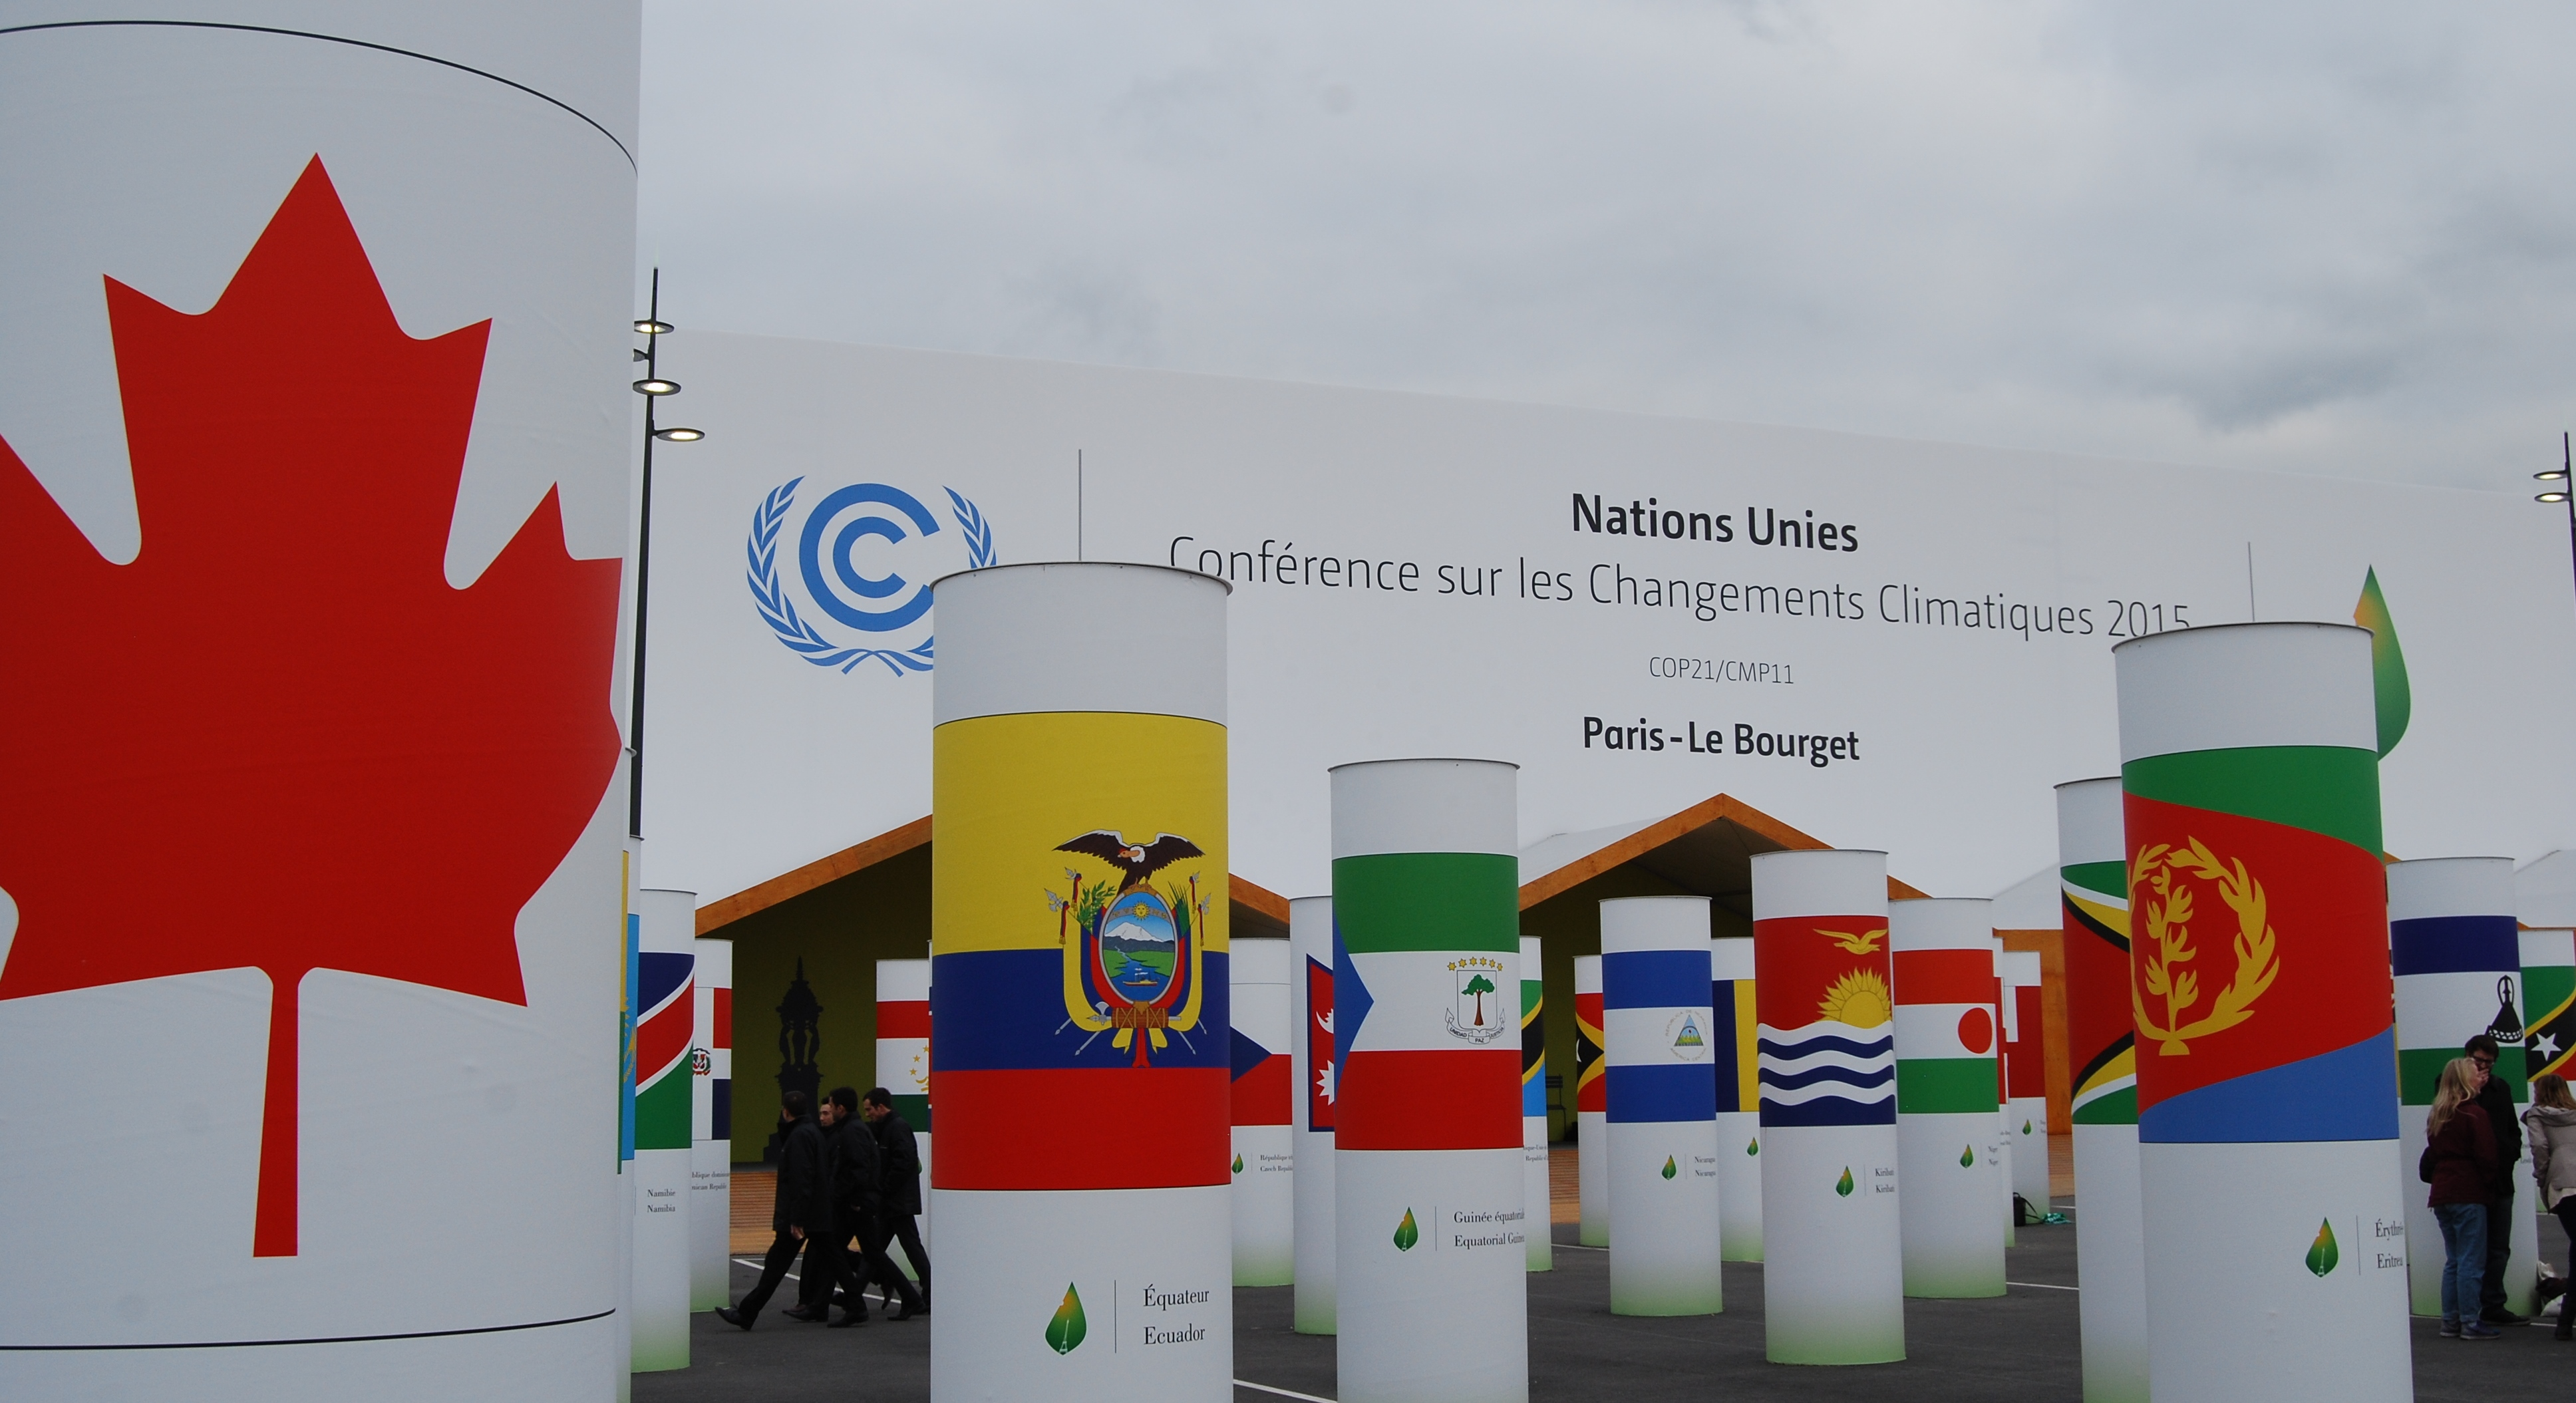 GODAN's Highlights at COP21